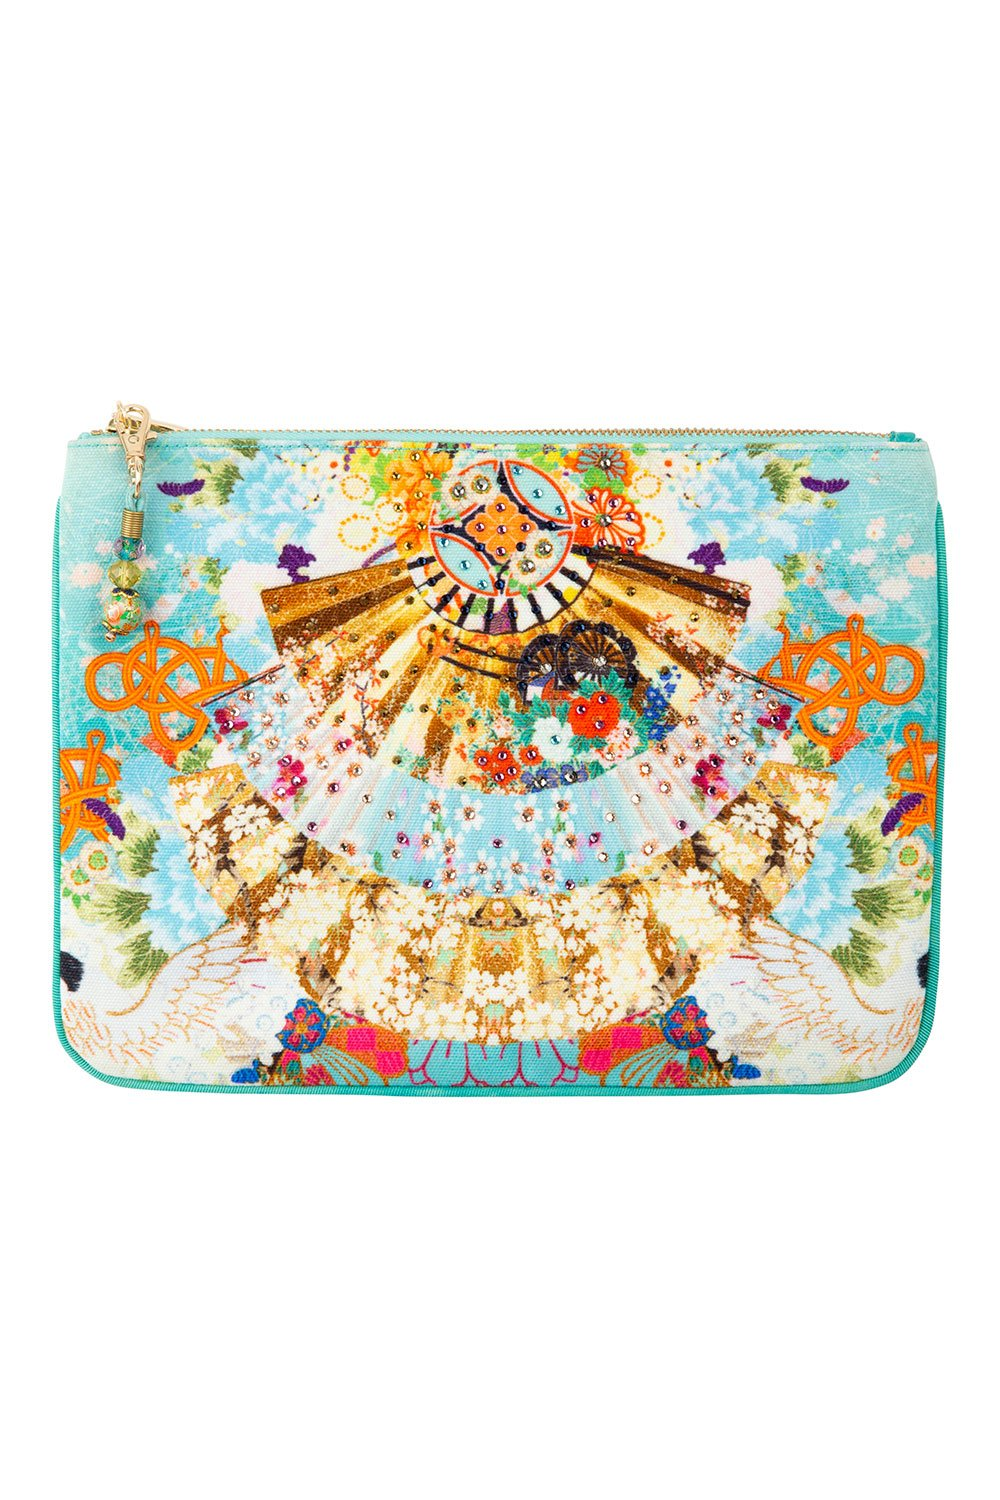 CAMILLA SMALL CANVAS CLUTCH RETRO'S RAINBOW